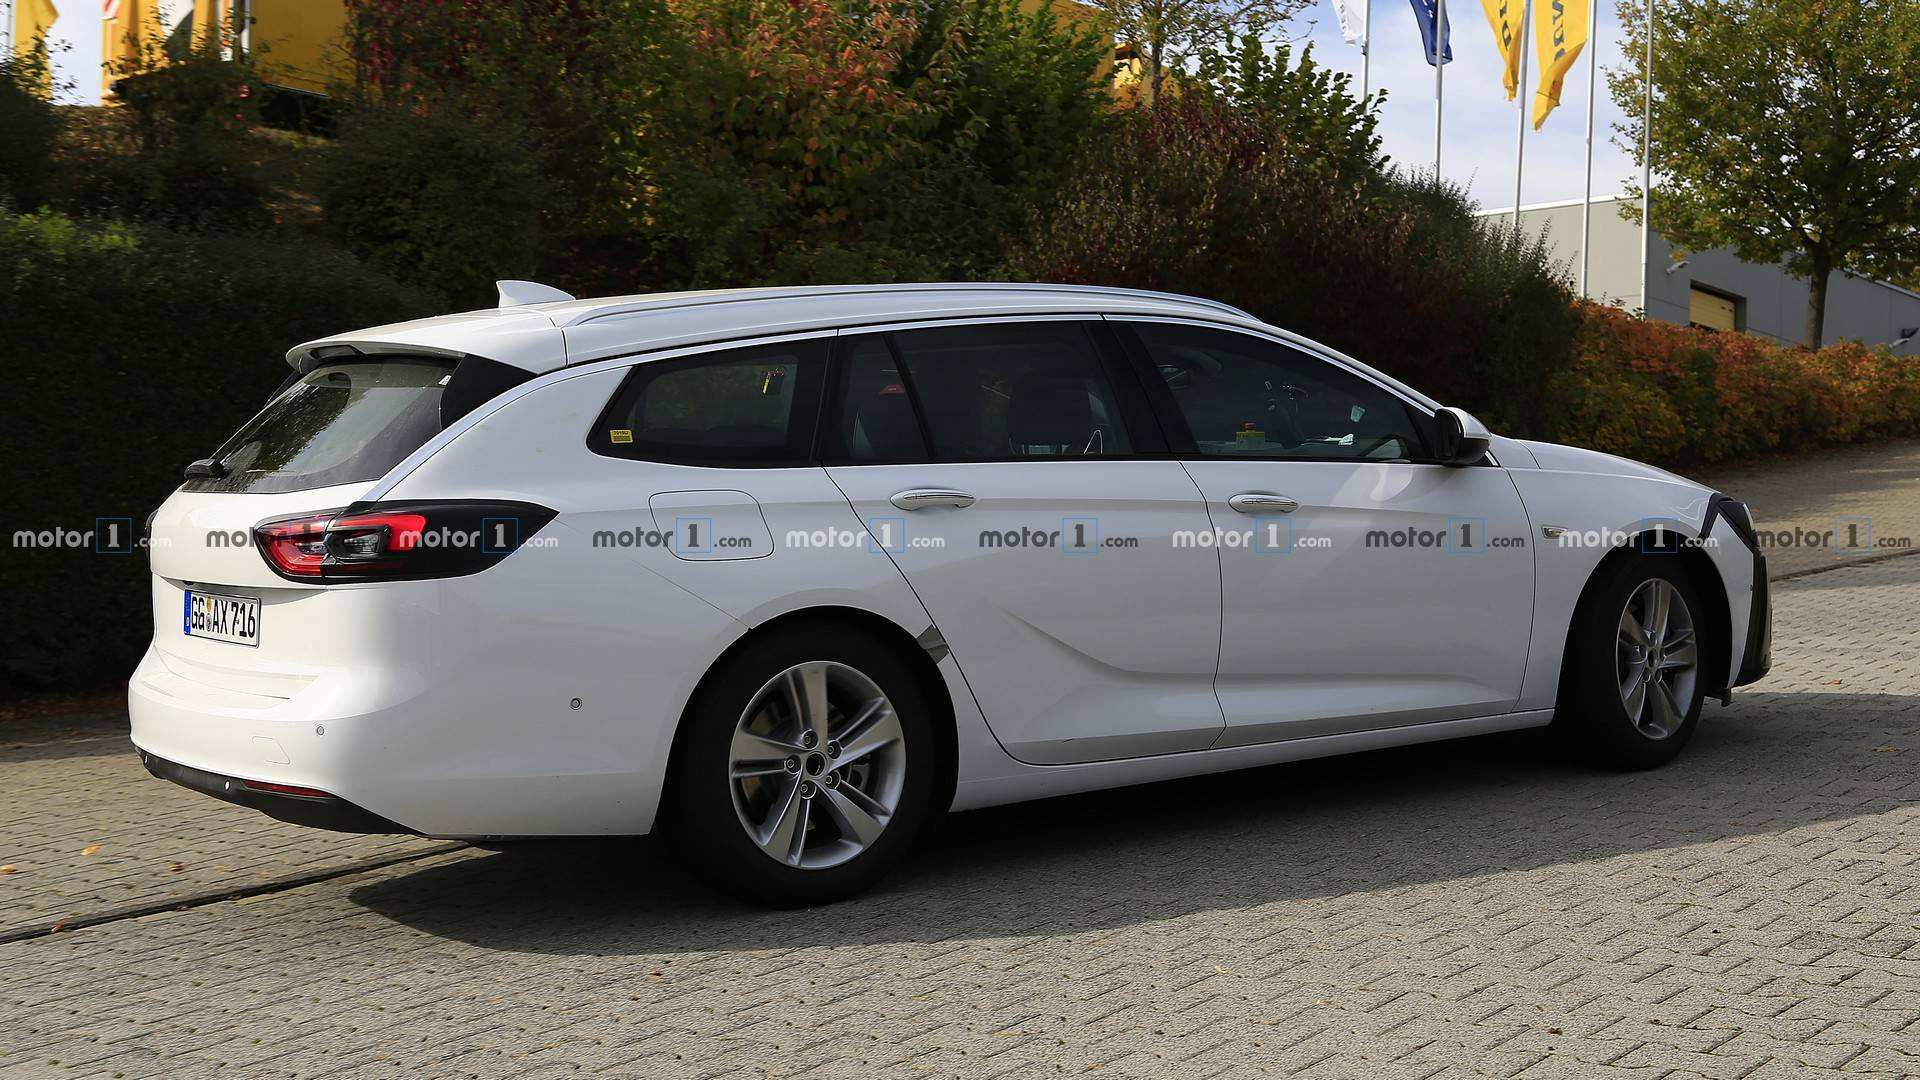 87 Gallery of Opel Insignia Sports Tourer 2020 Style by Opel Insignia Sports Tourer 2020